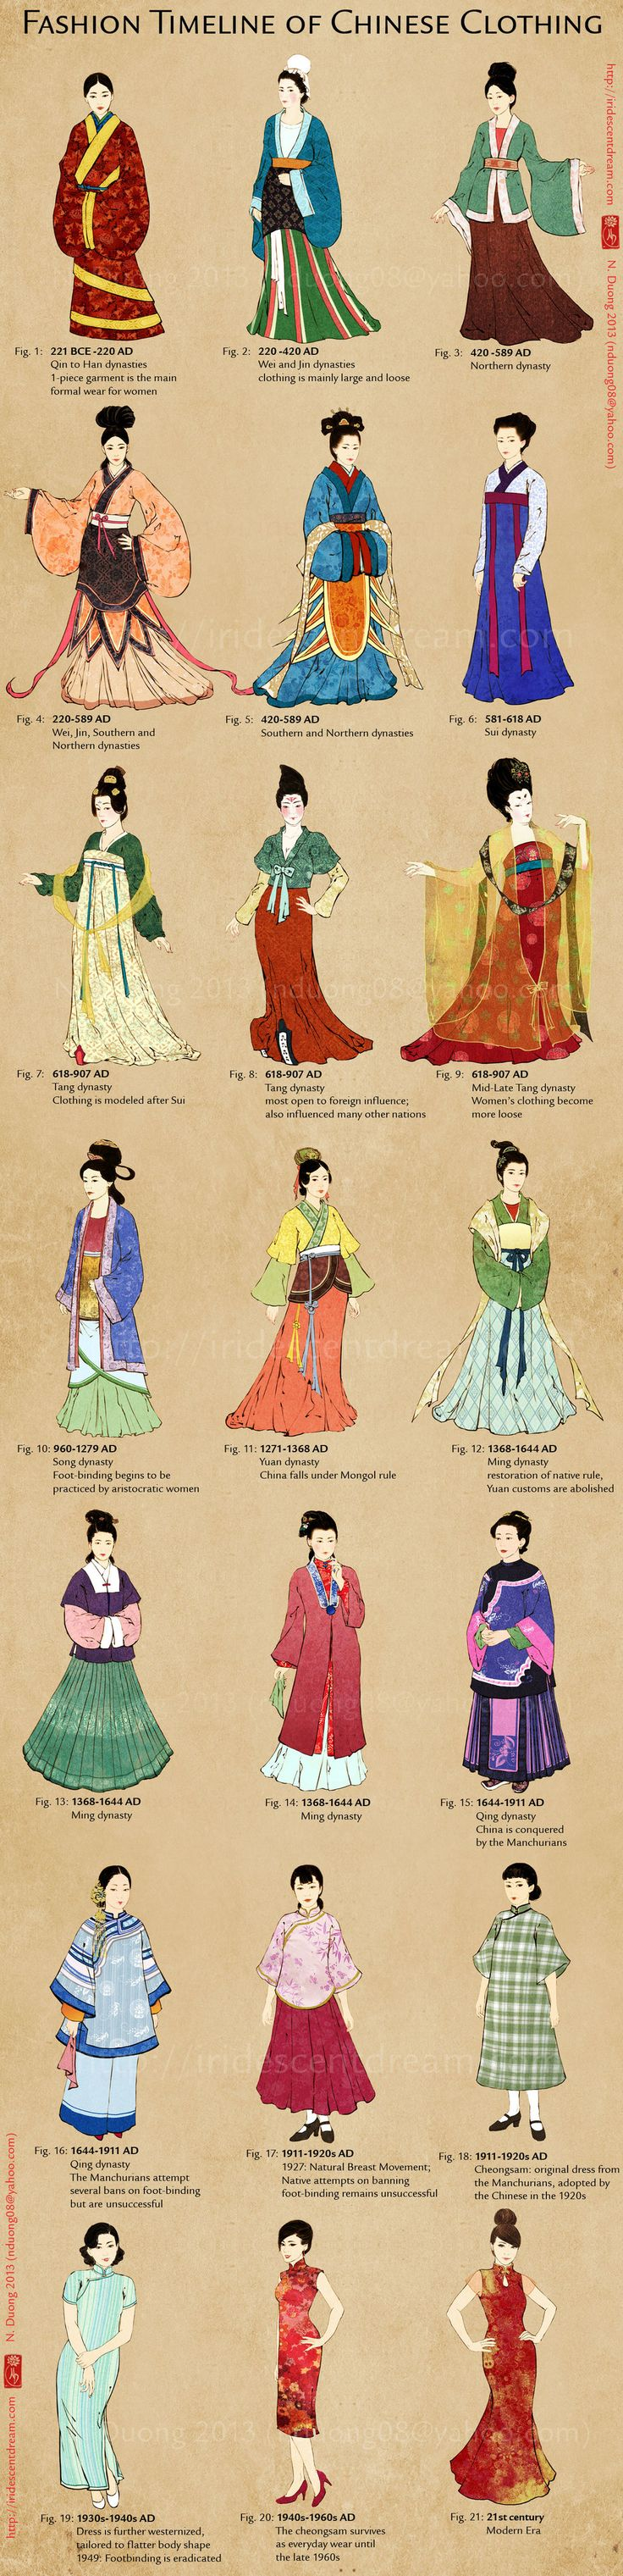 Evolution of Chinese Clothing and Cheongsam/Qipao by lilsuika.deviantart.com on @deviantART